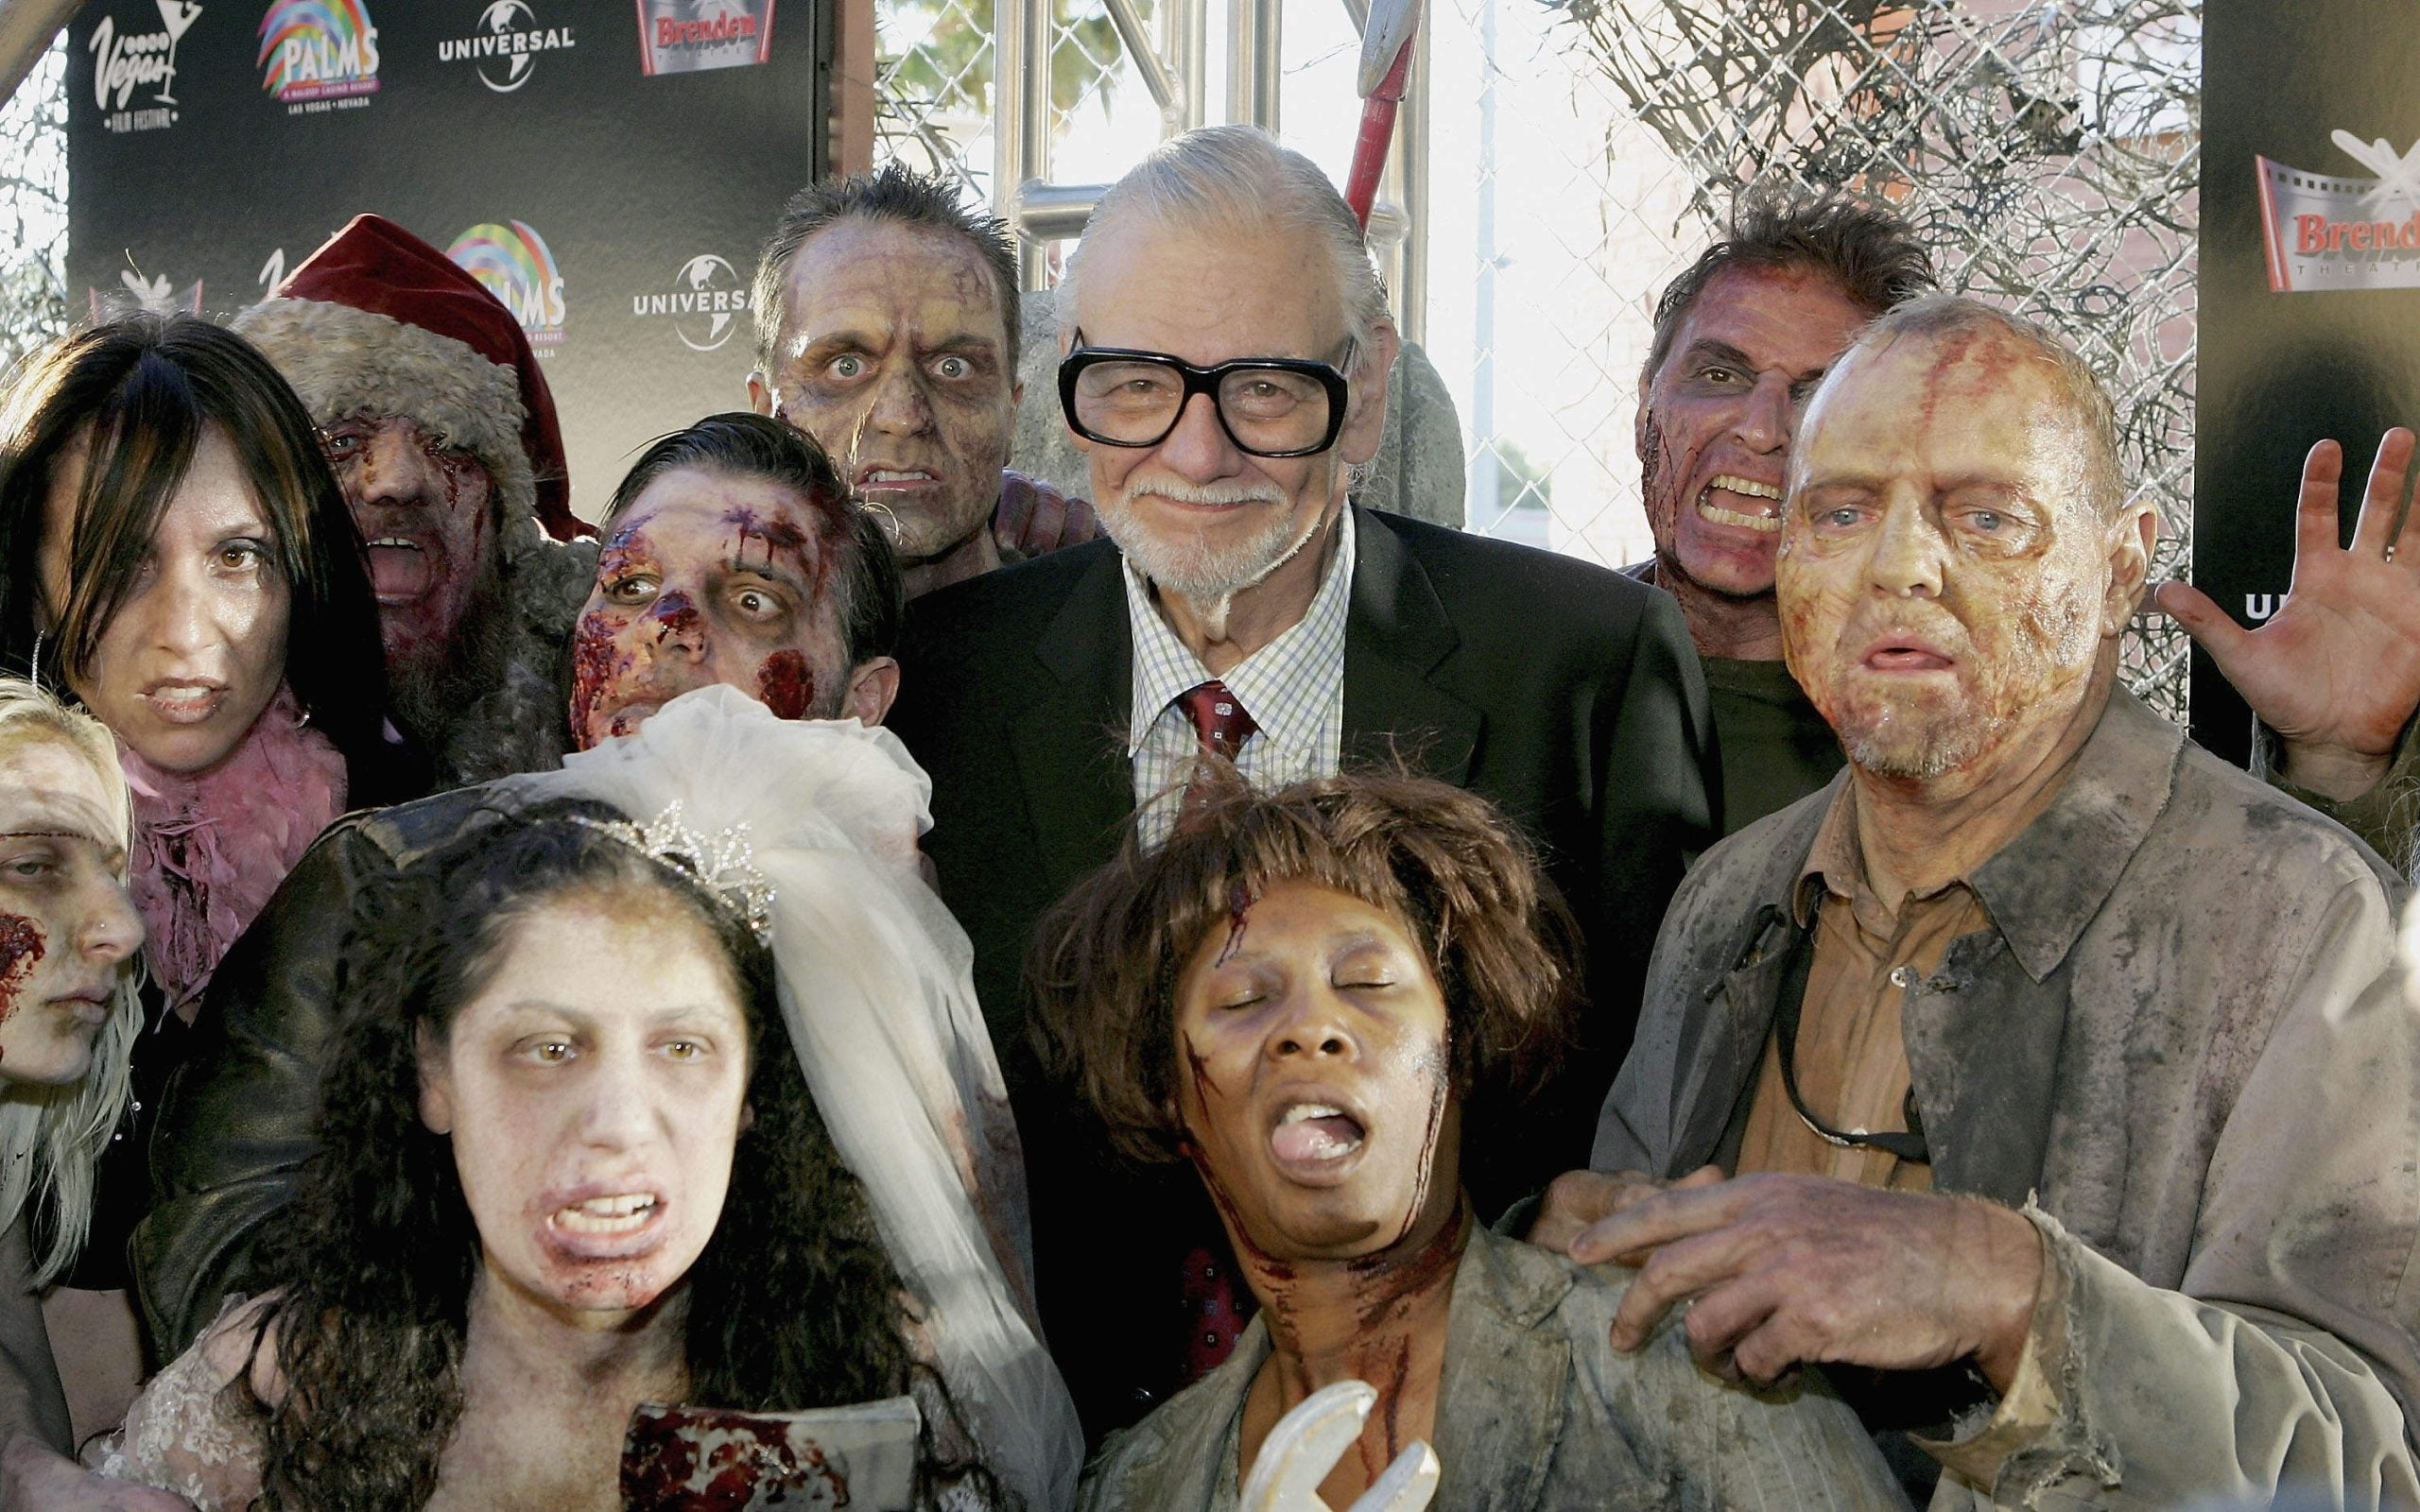 George Romero's Night of the Living Dead created the zombie apocalypse as we know it